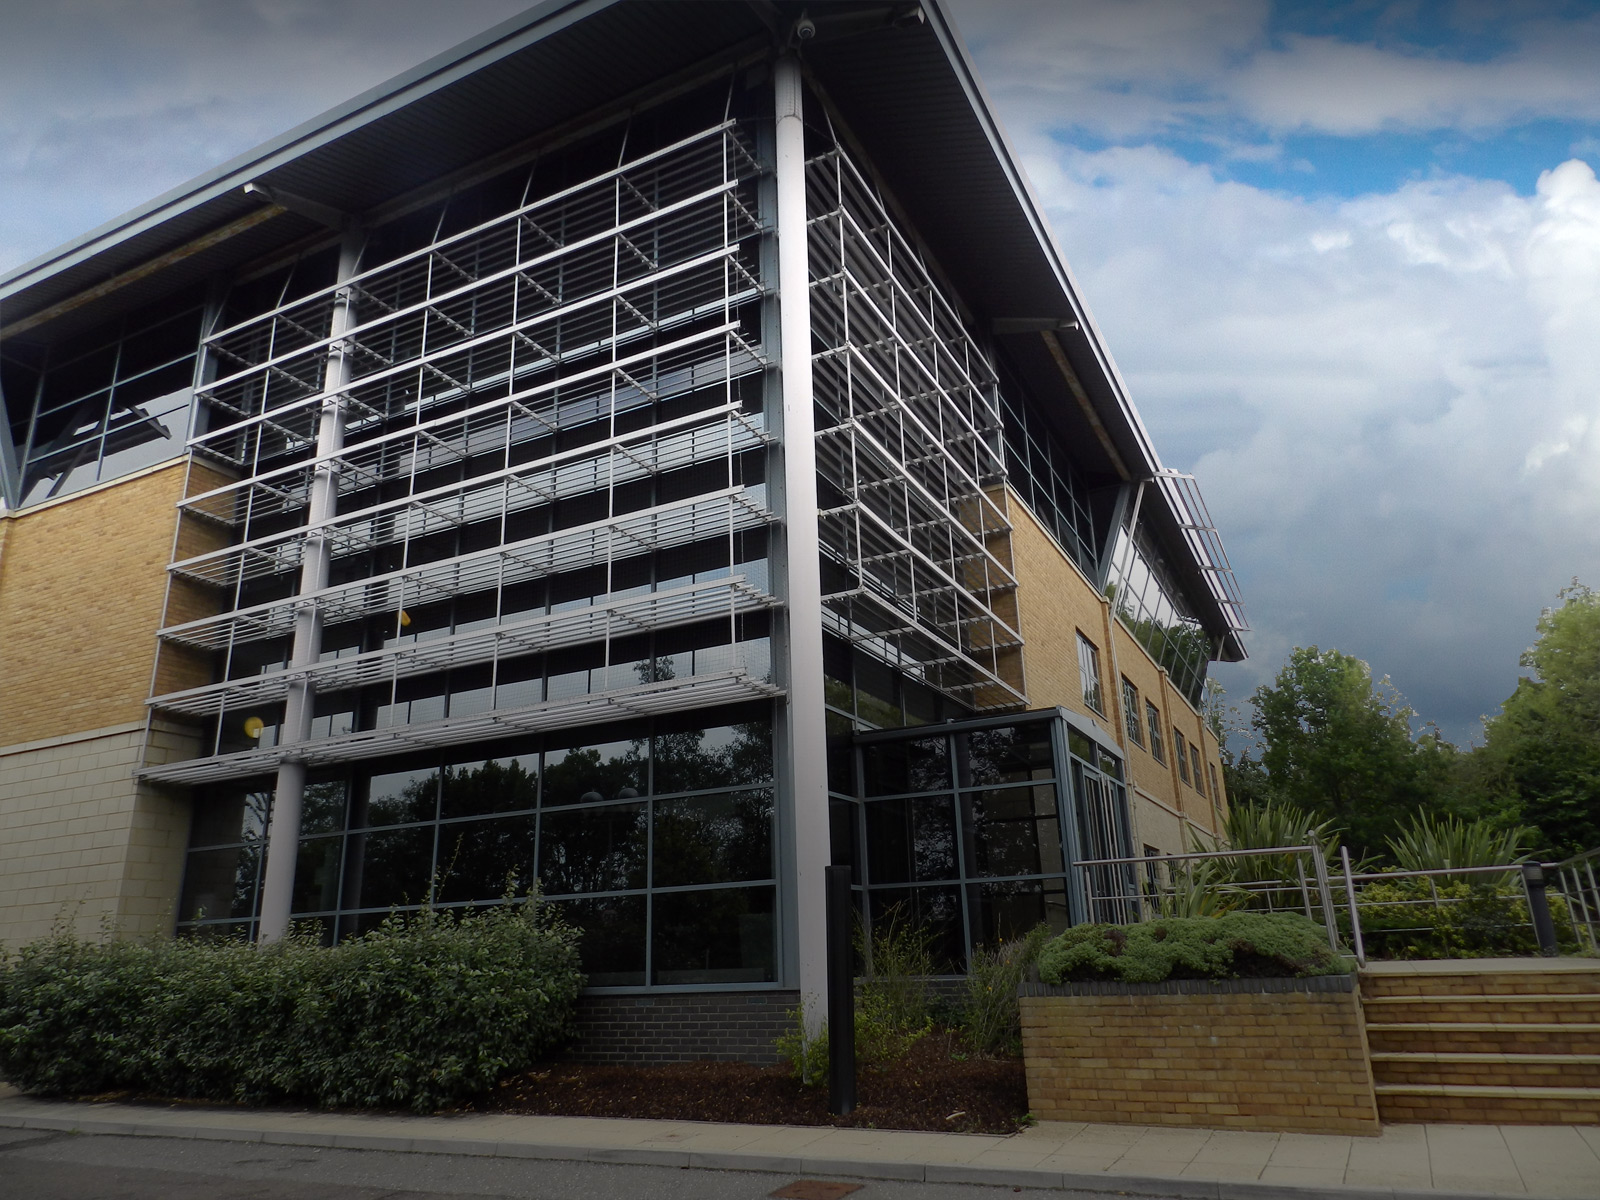 Major air-conditioned office building in Basingstoke